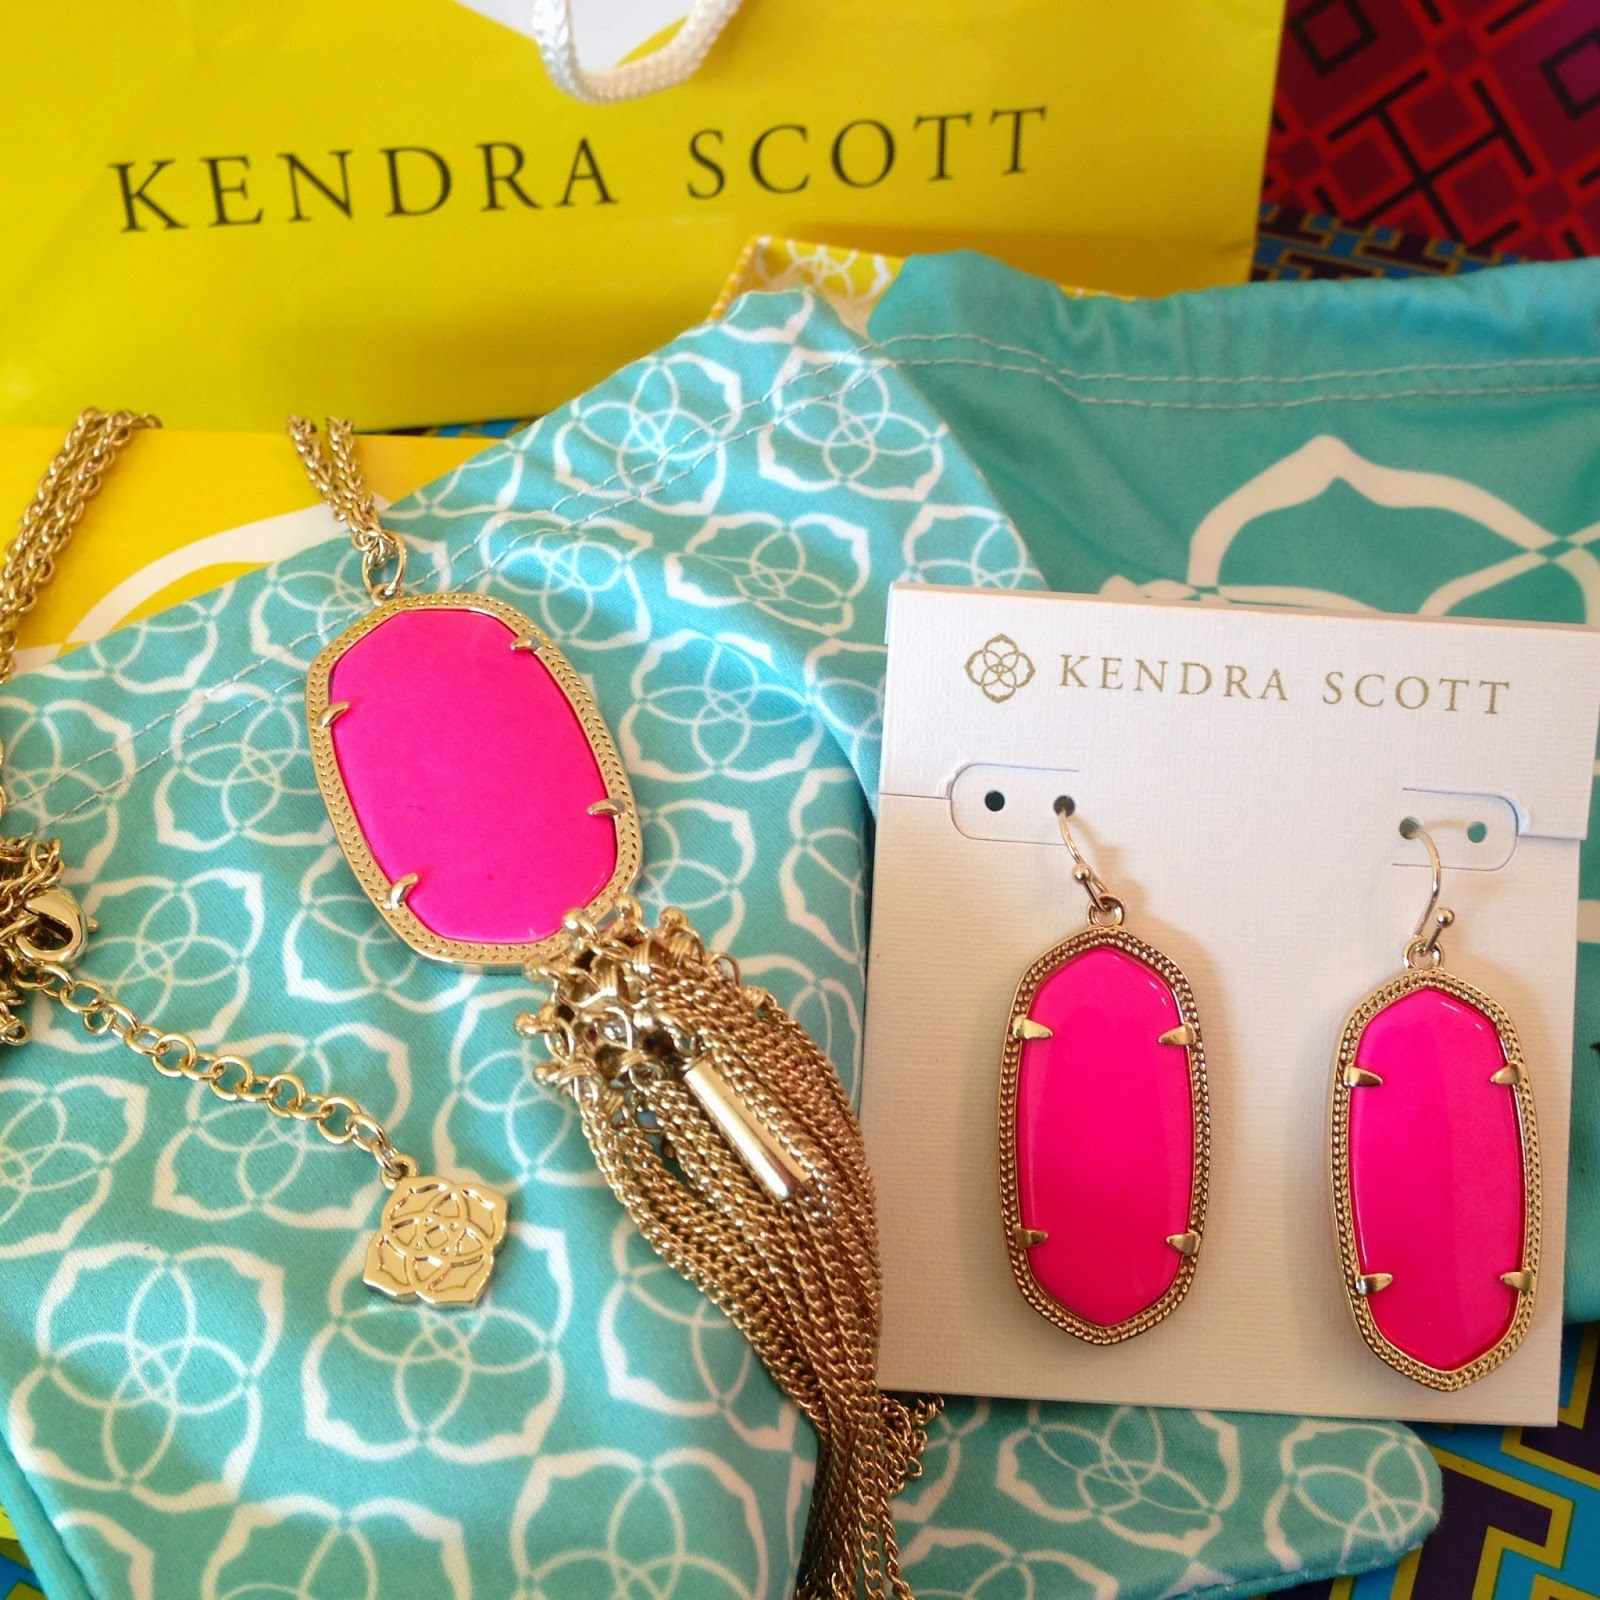 Kendra Scott offers jewelry, home decor, gifts and beauty. From decorative trays to nail polish, earrings, necklaces, bracelets and more, shop shopnew-l4xmtyae.tk